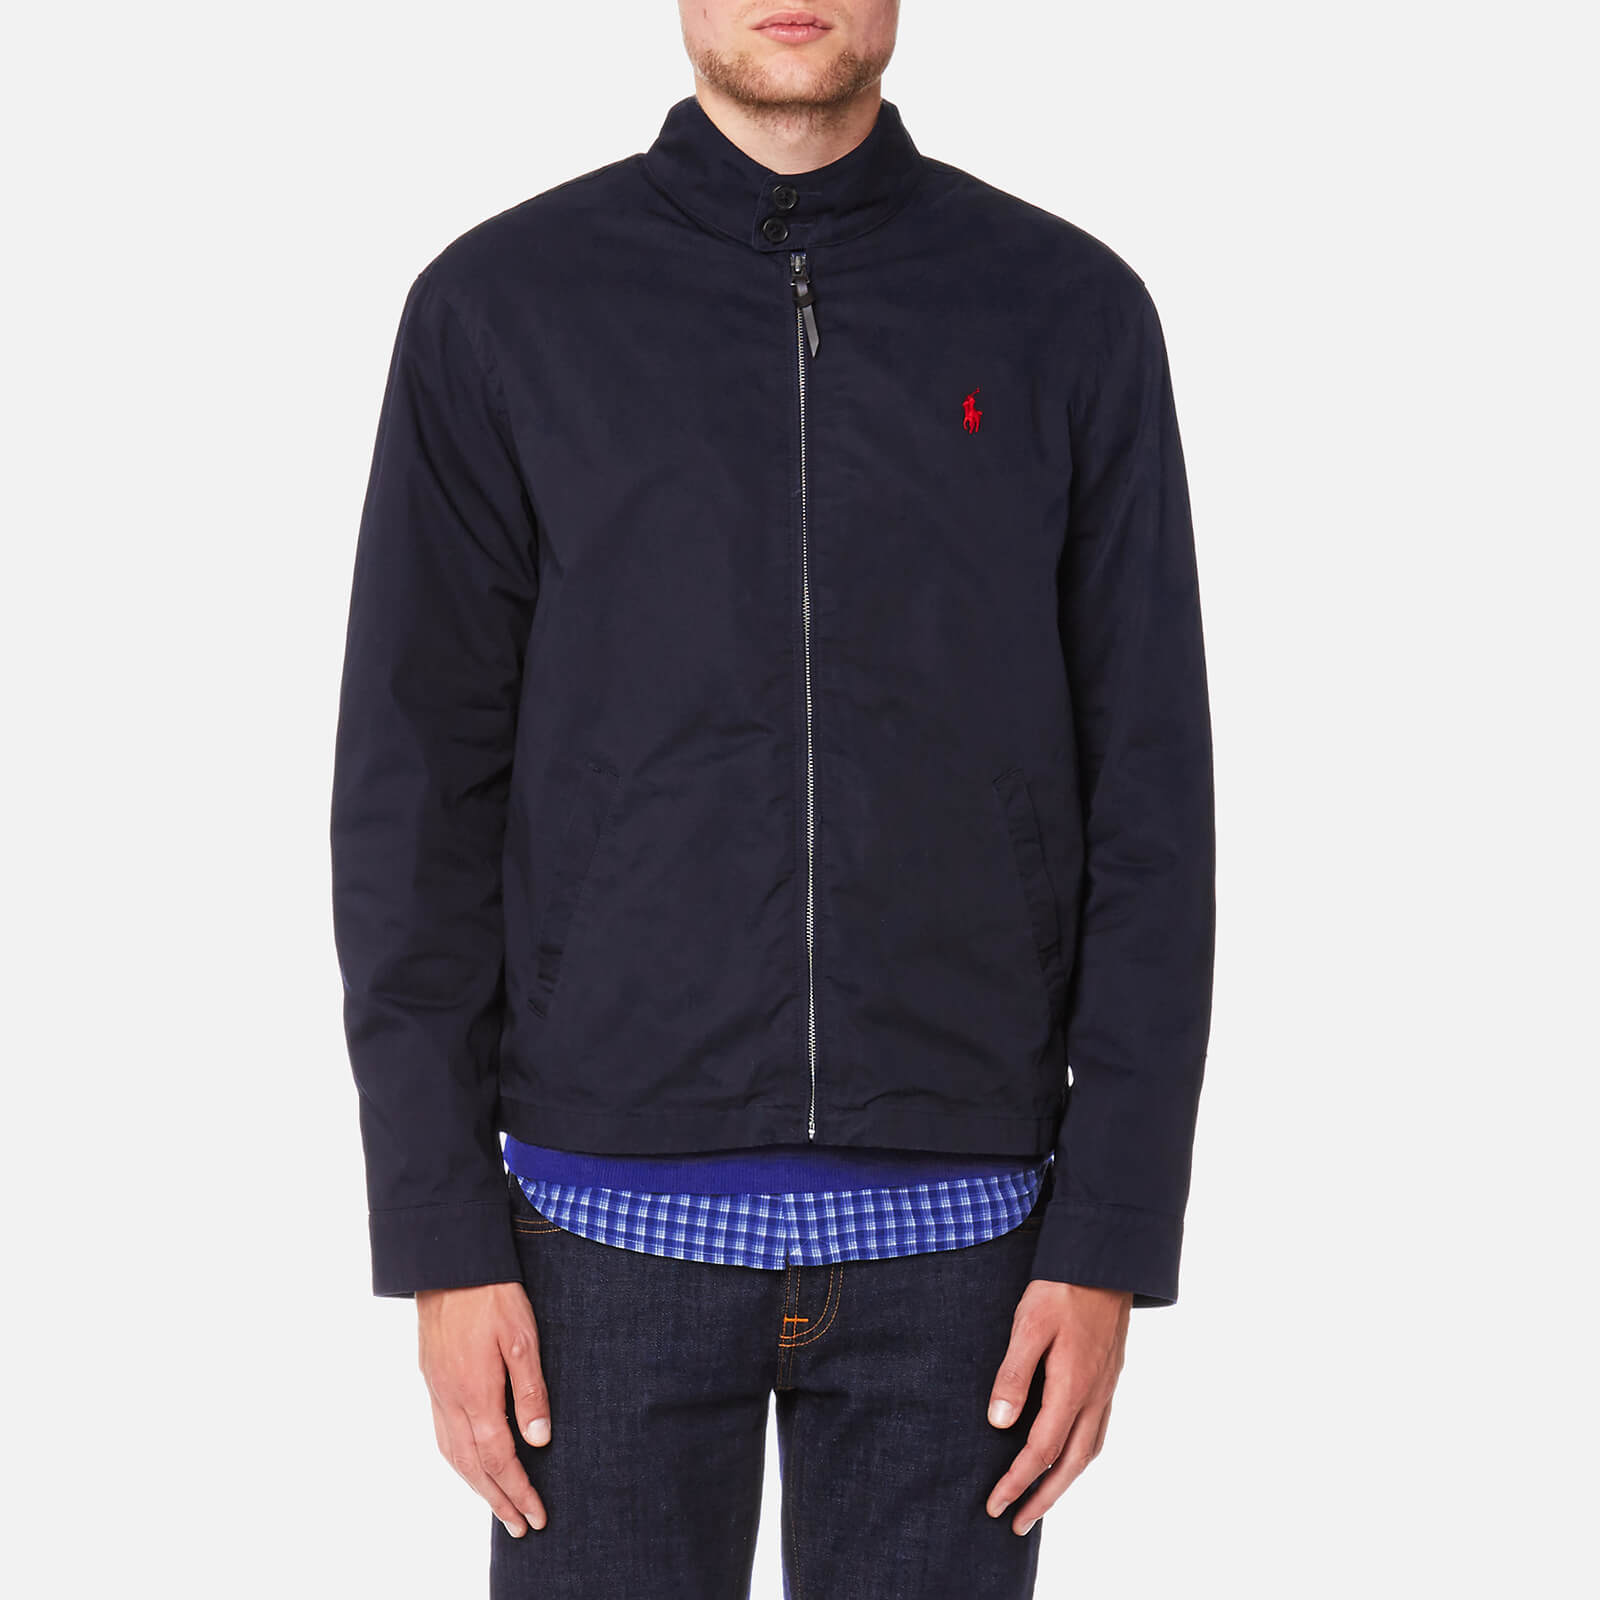 ccd5d82e5901 Polo Ralph Lauren Men s Barracuda Lined Jacket - College Navy - Free UK  Delivery over £50